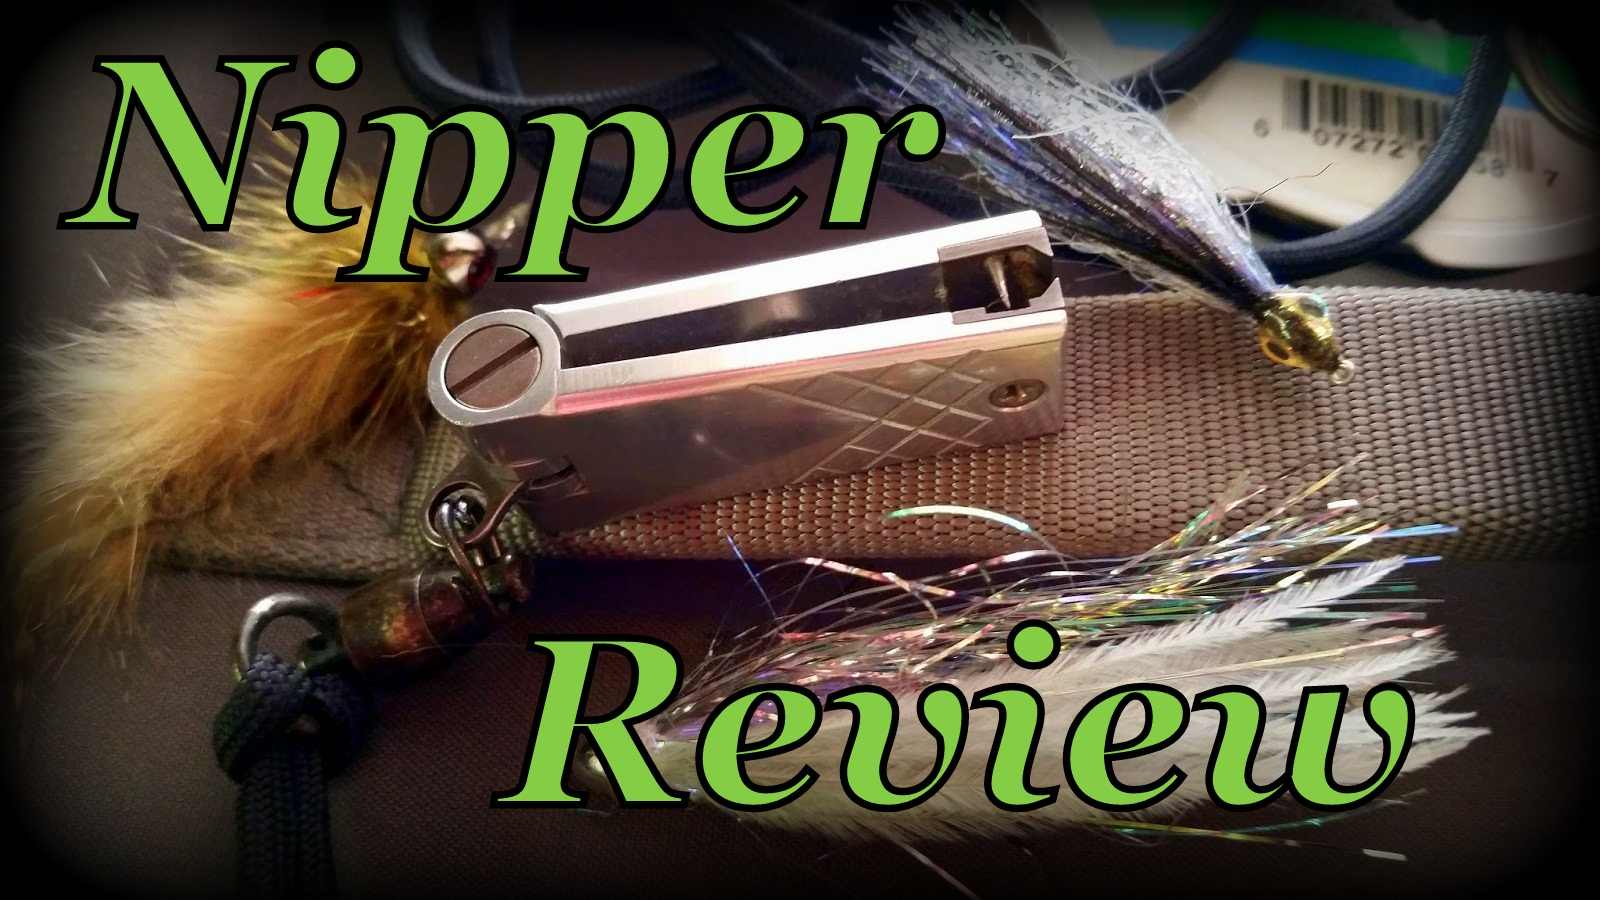 NEW ABEL FLY FISHING LINE NIPPER CUTTER RAINBOW TROUT IN STOCK FREE US SHIPPING